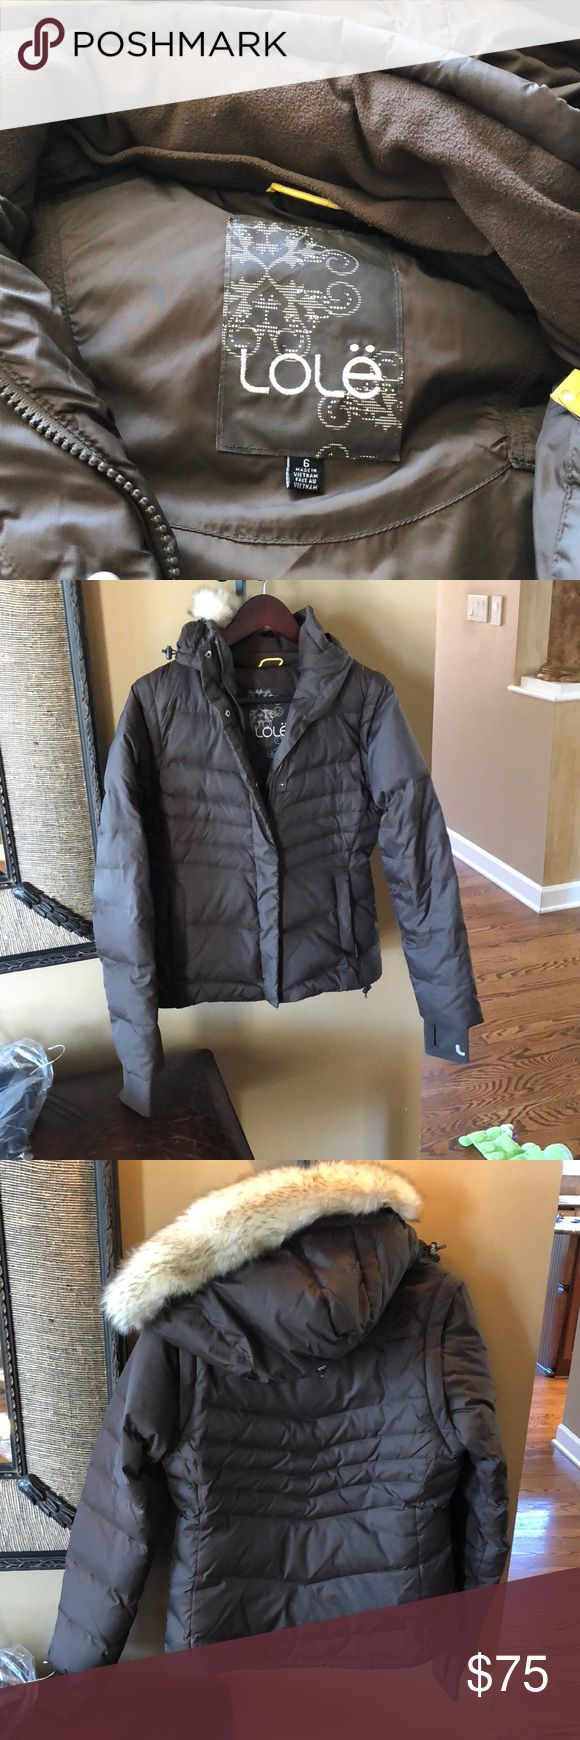 Lole down- filled ski jacket and coverts to vest Chocolate brown Lole ski jacket. Great condition! Duck down filled and converts to vest! Size 6, but fits like a 4. Lole Jackets & Coats Puffers